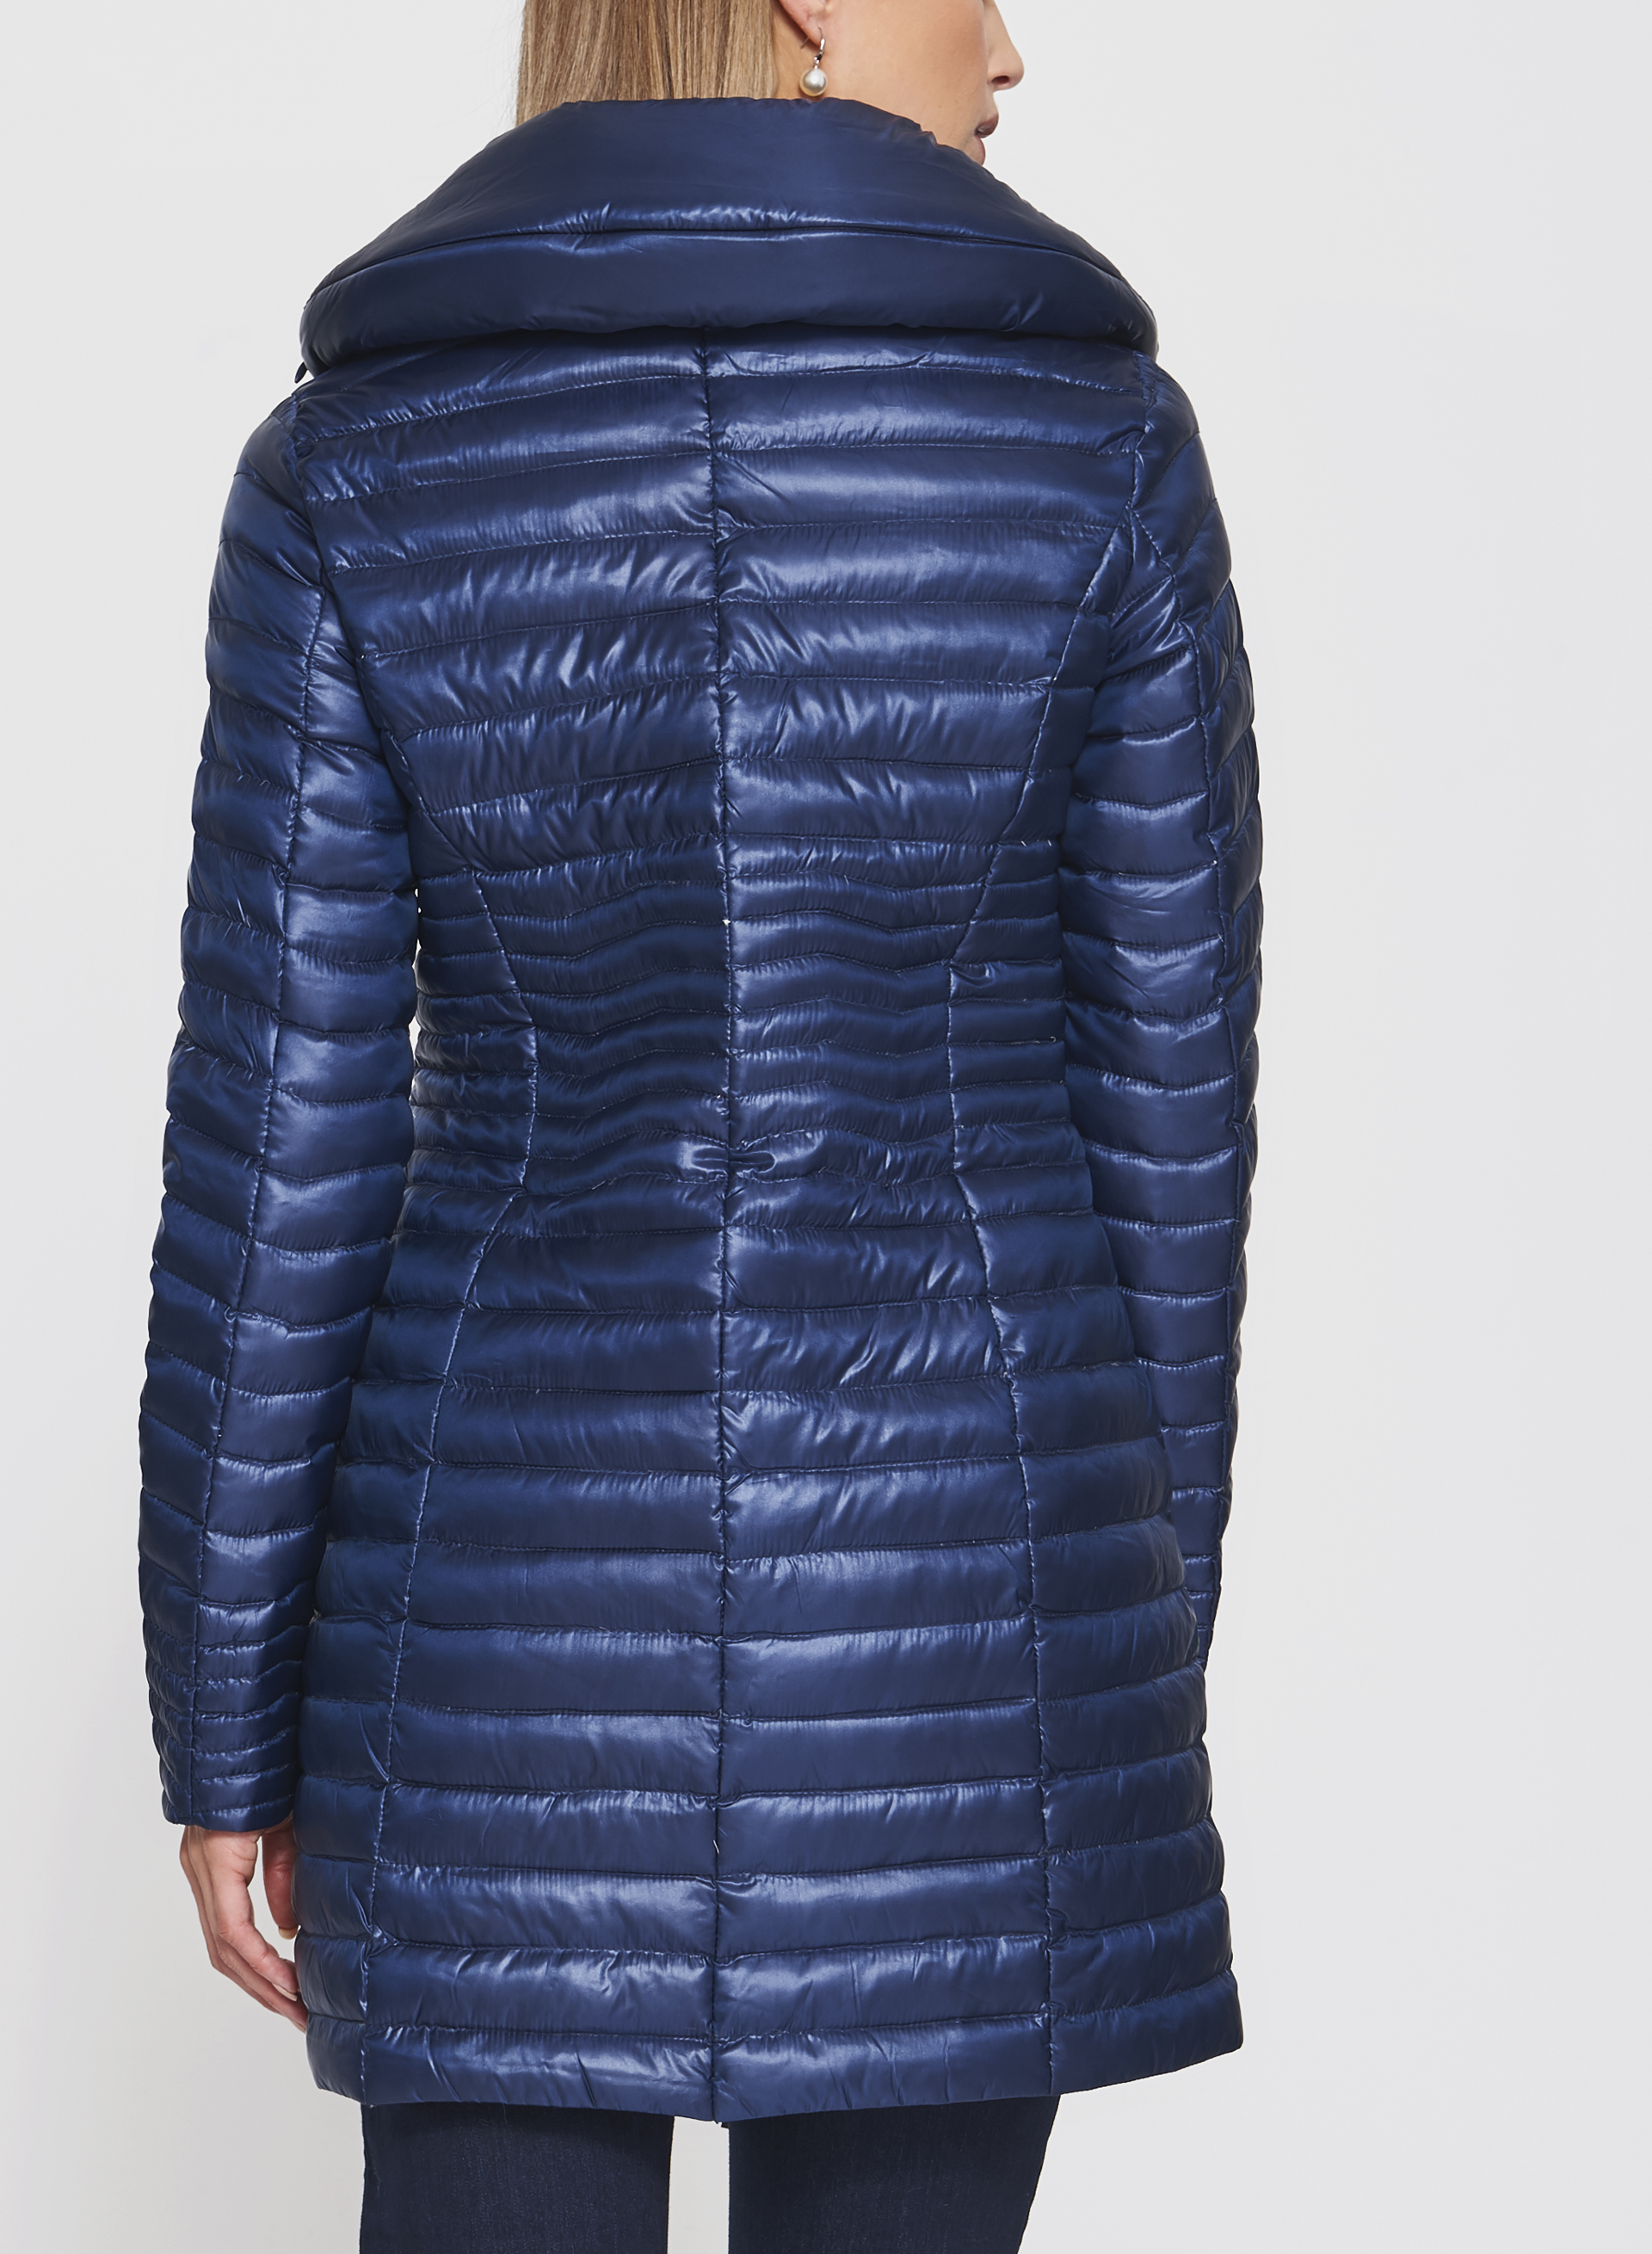 Nuage - Lightweight Packable Down Coat, Blue, hi-res